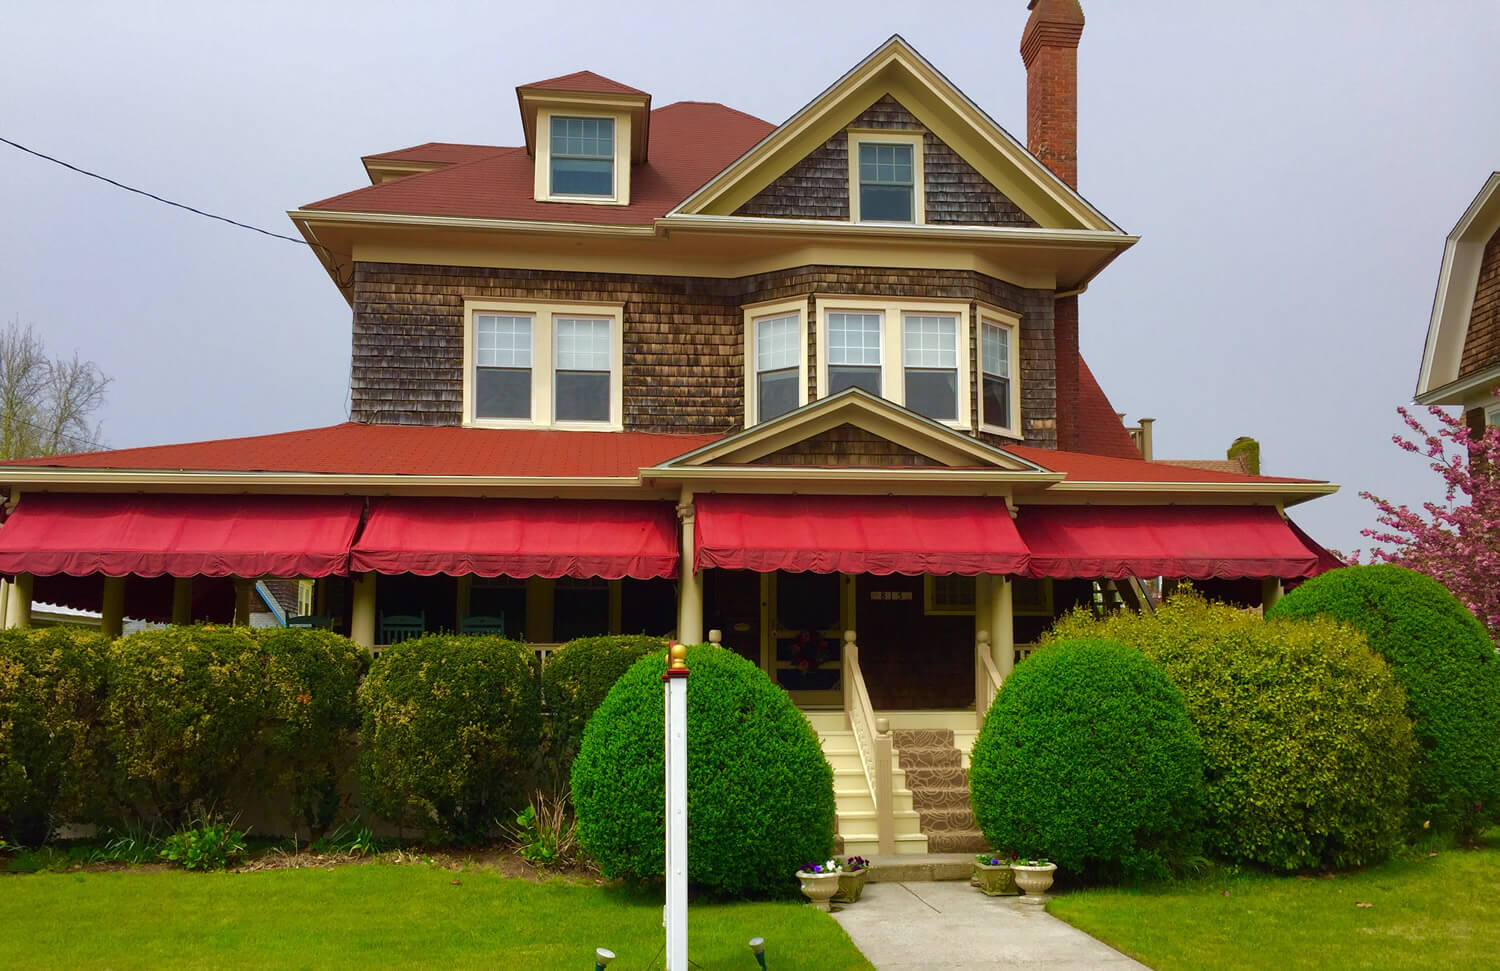 Inn with red awnings and brown cedar shakes and greenery